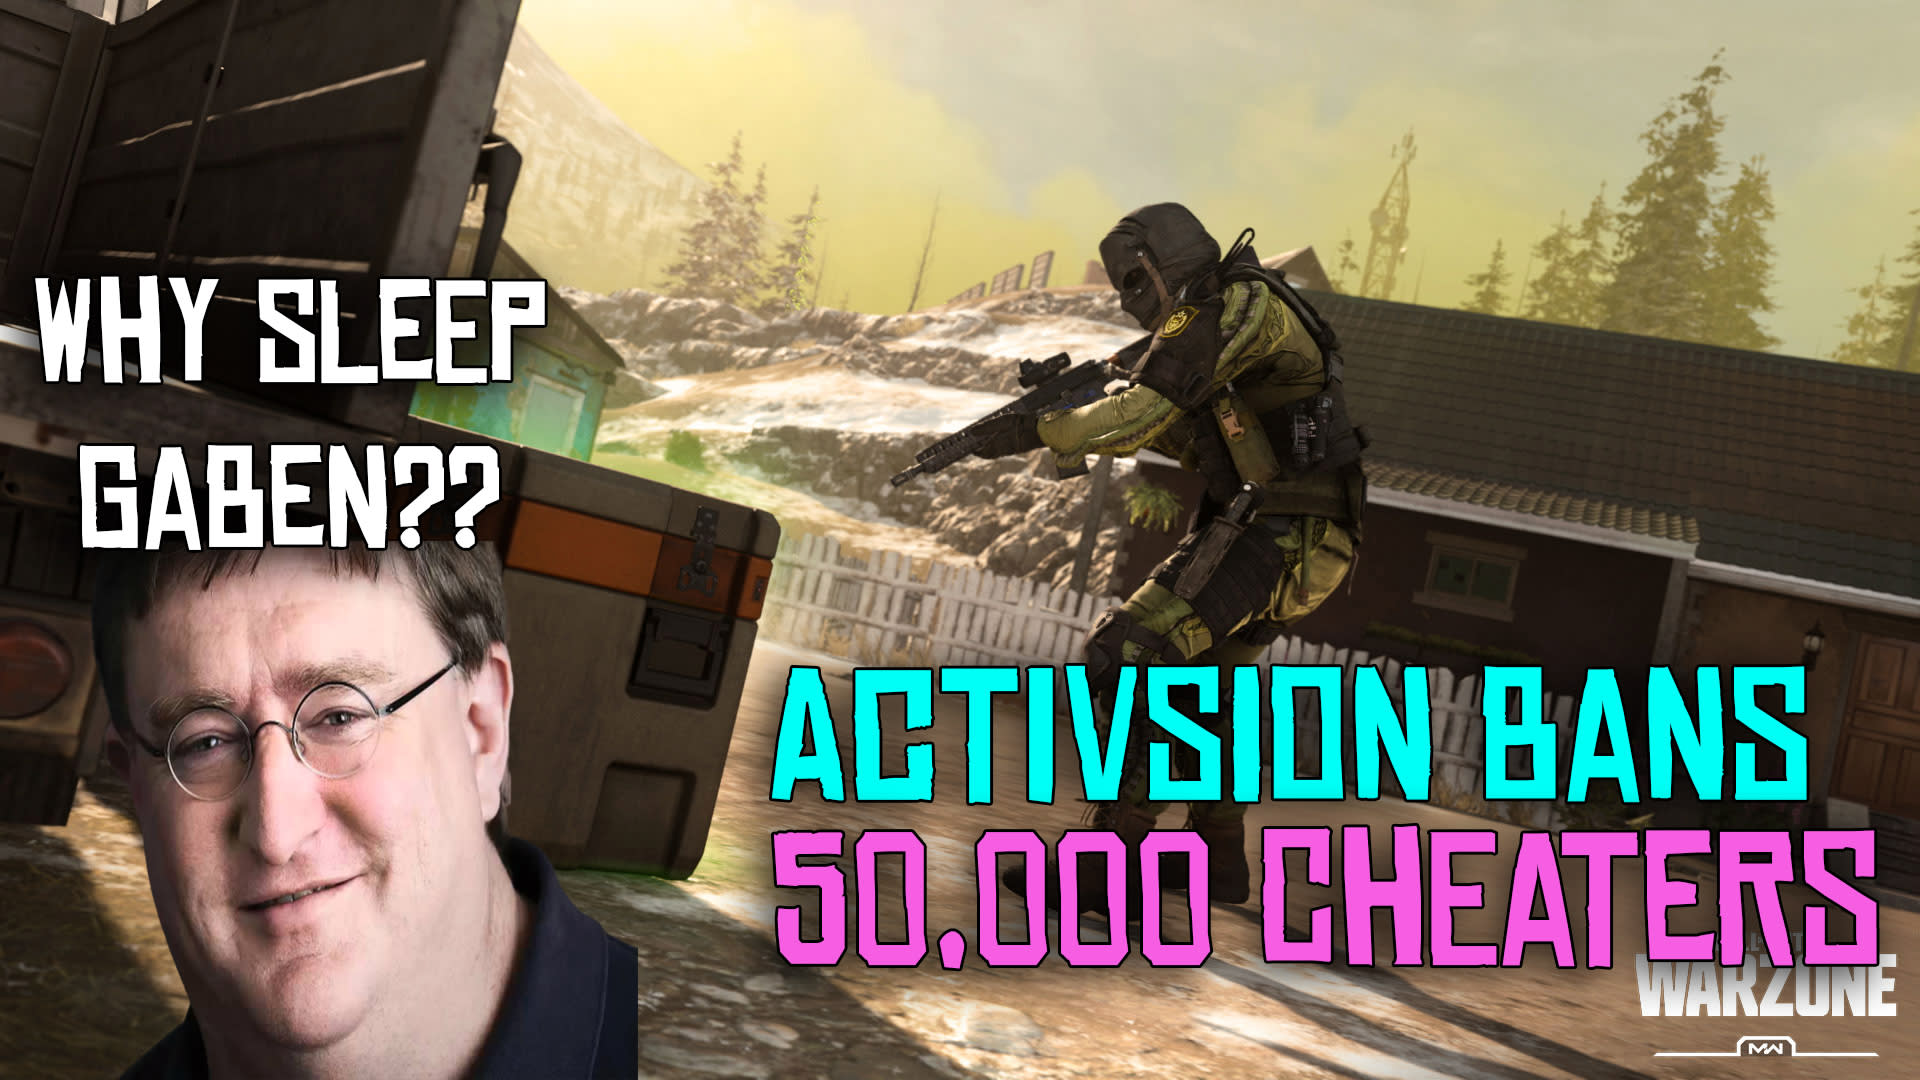 ACTIVISION BANS OVER 50K Cheaters from COD WARZONE, Here's what Valve can do. 2